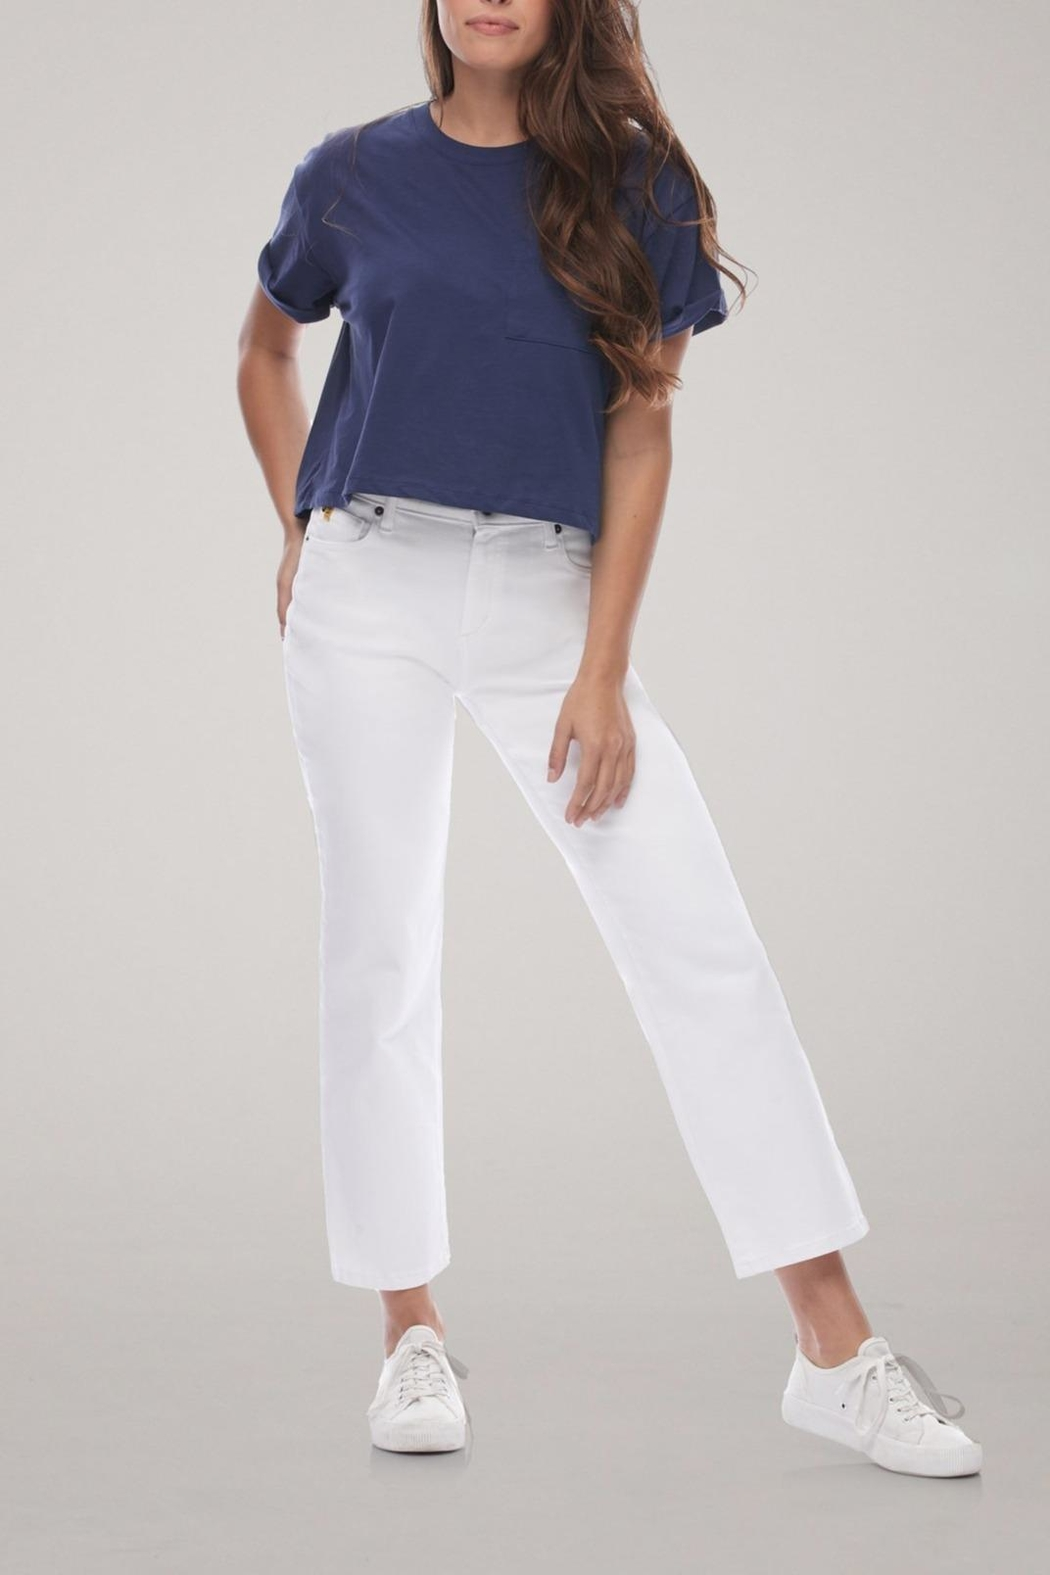 Yoga Jeans Cropped Straight Leg Jean - Front Cropped Image